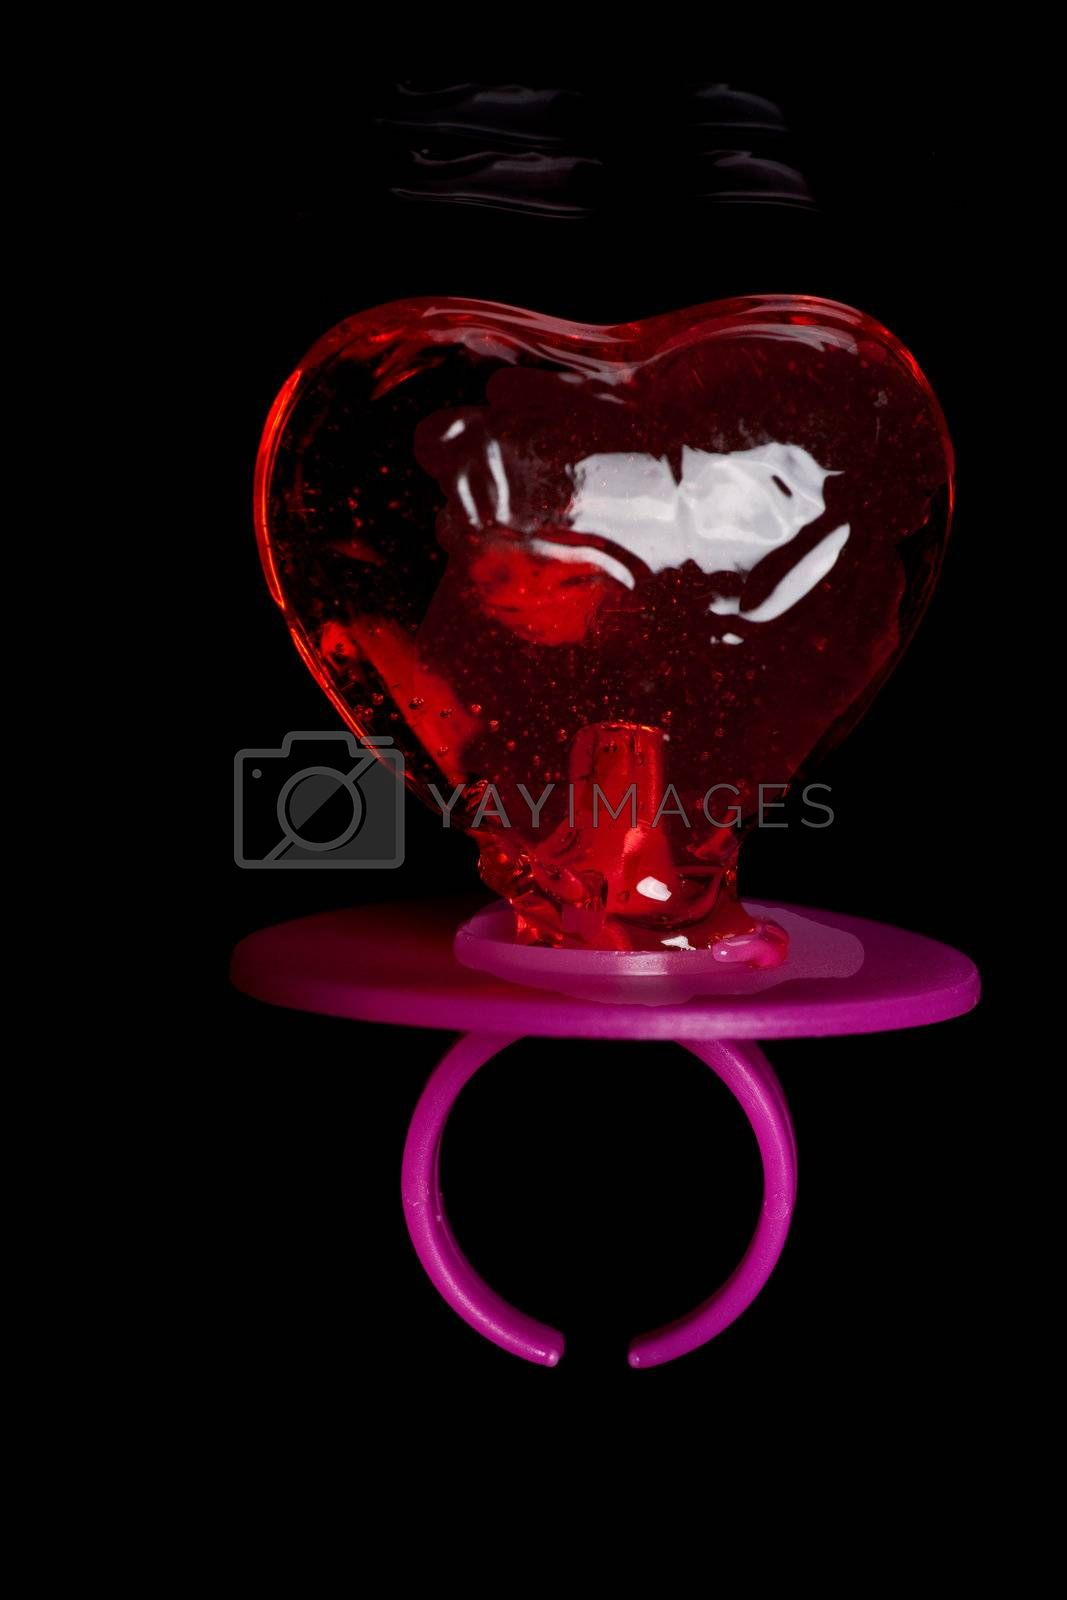 Baby teat in heart shape on black background